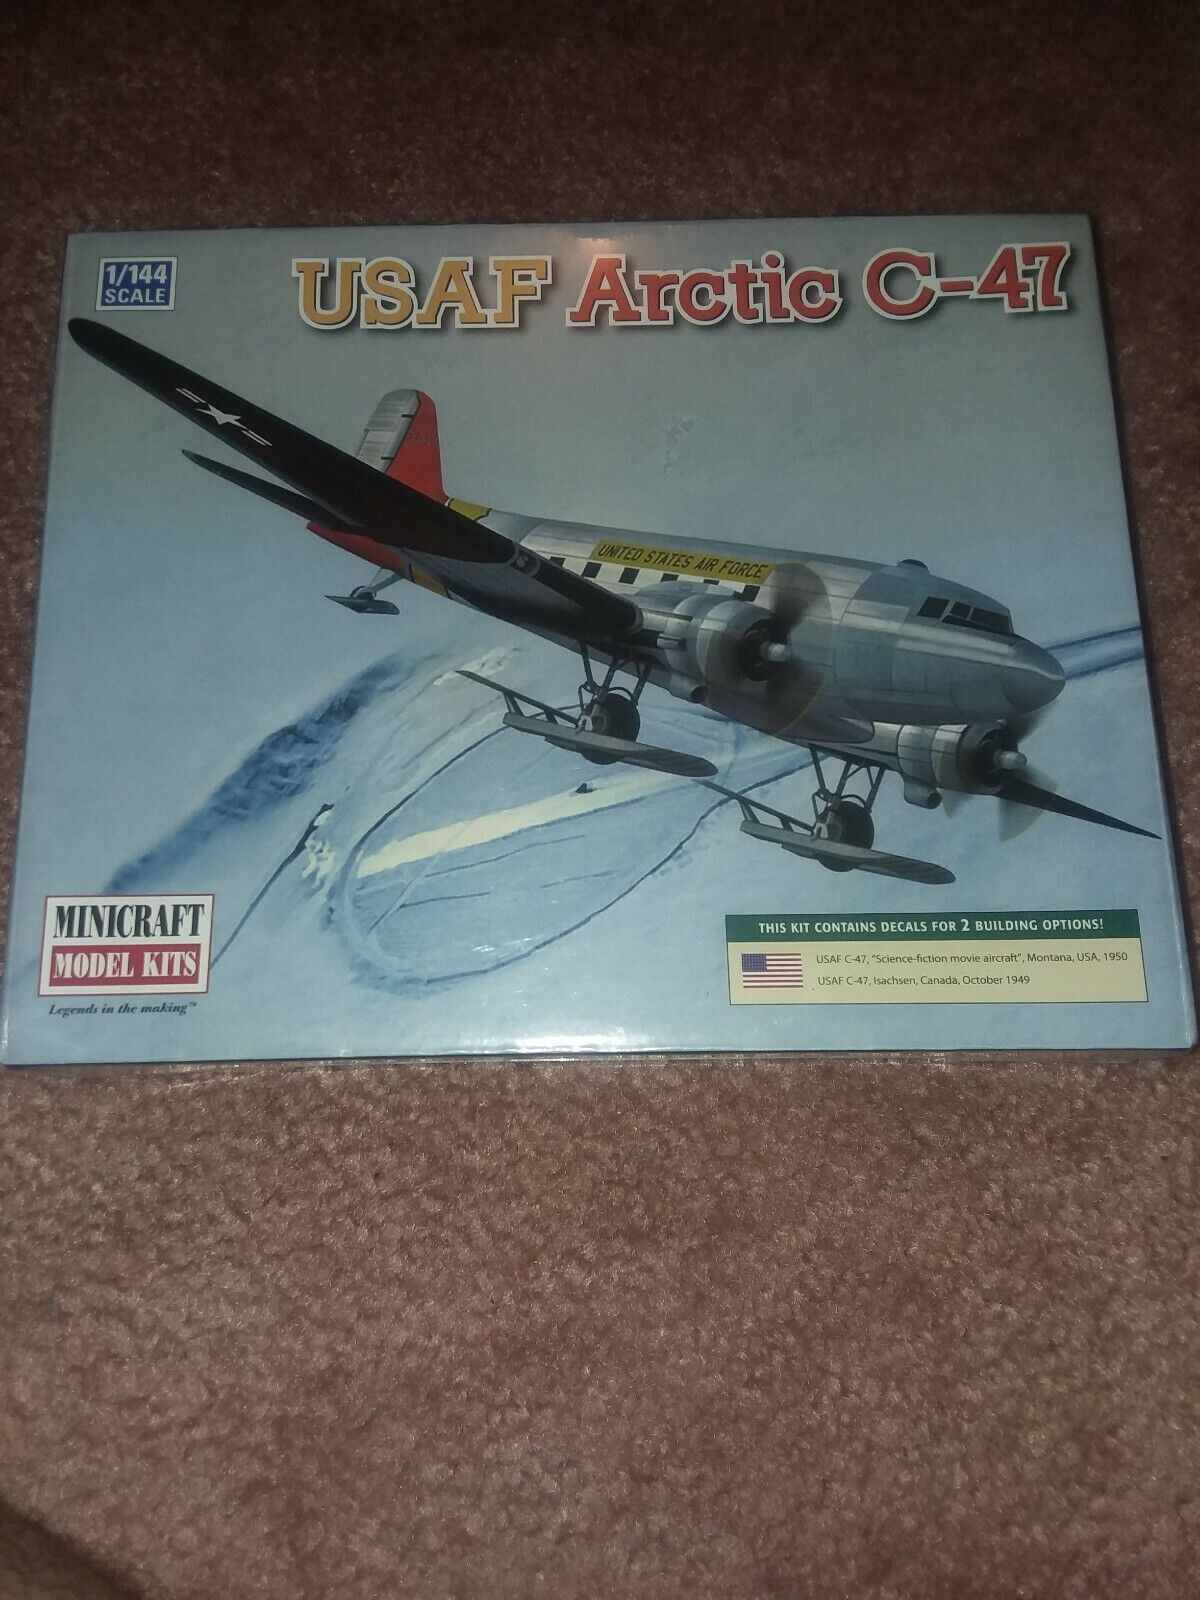 Minicraft Model Aircraft Kit 14671 - 1 144 Scale USAF Arctic C-47 Brand New